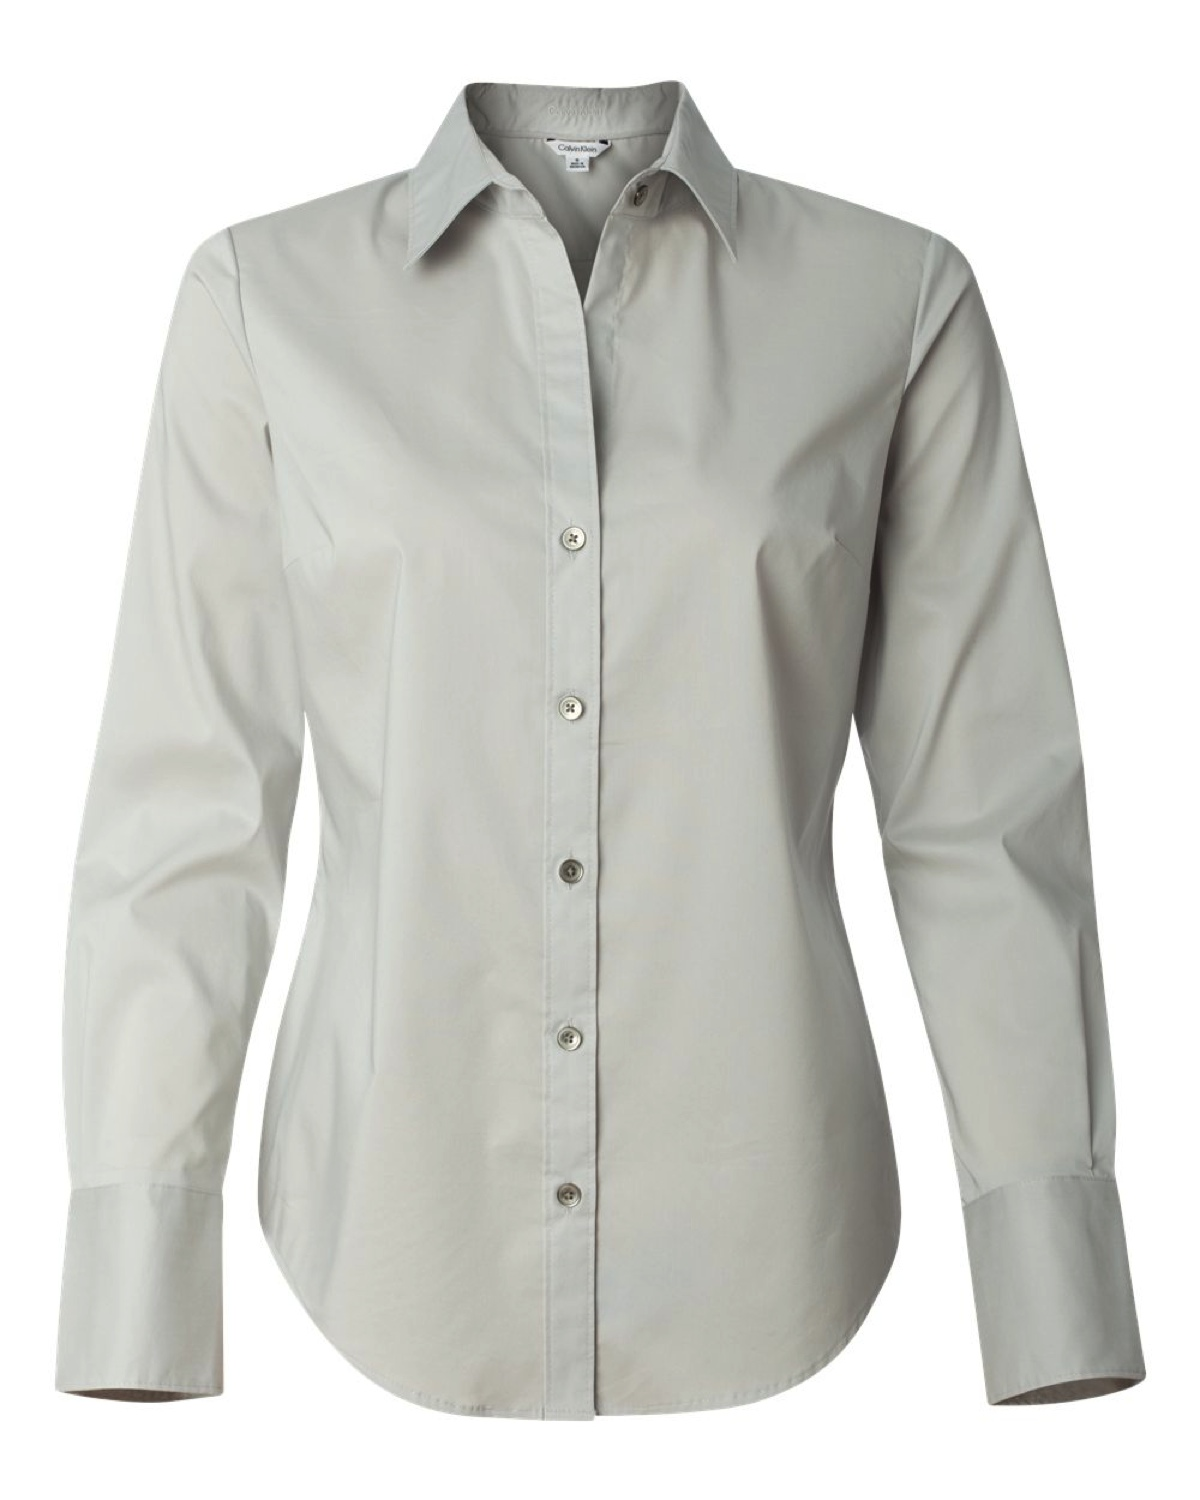 13CK018 Calvin Klein - Ladies' Cotton Stretch Shirt